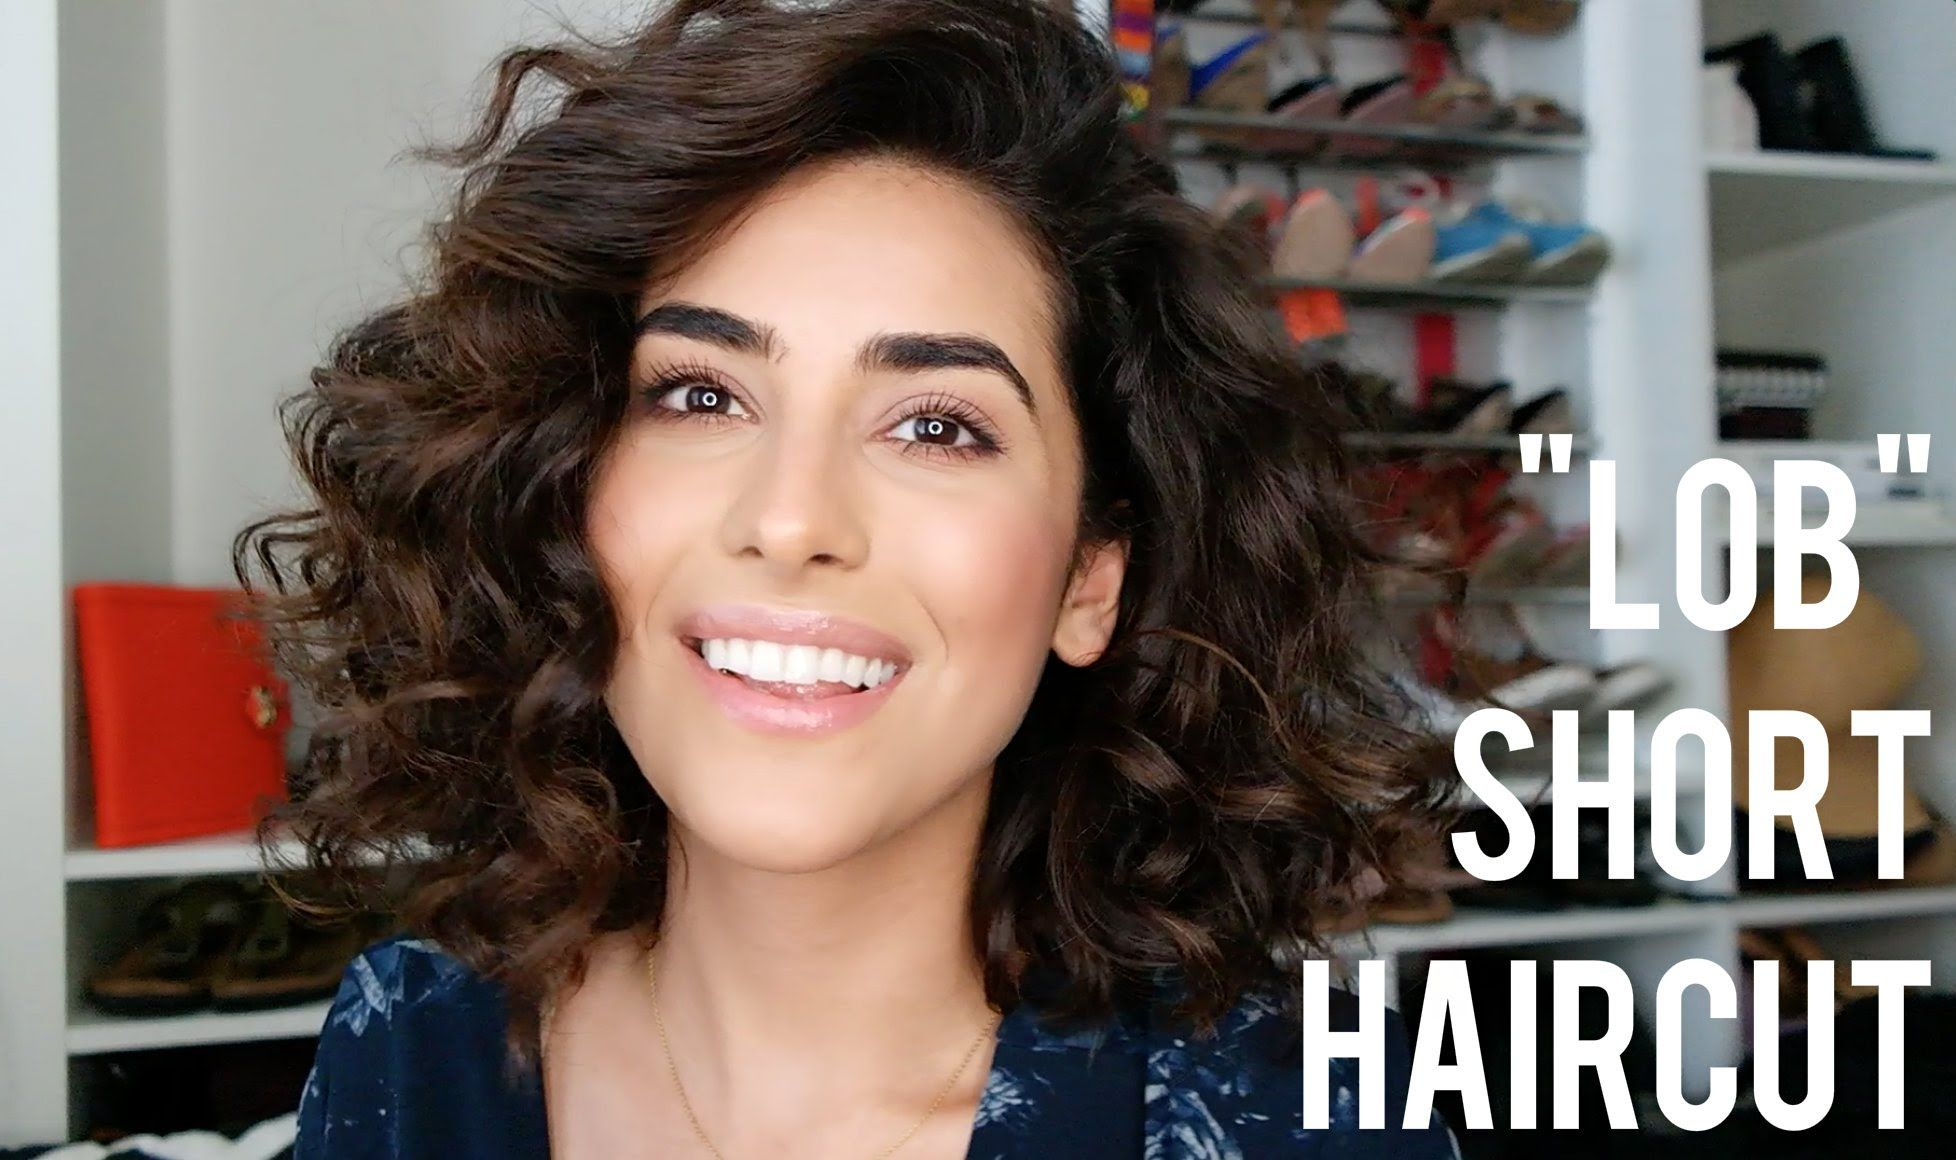 my short lob haircut (tips for styling) #lob | video tutorials